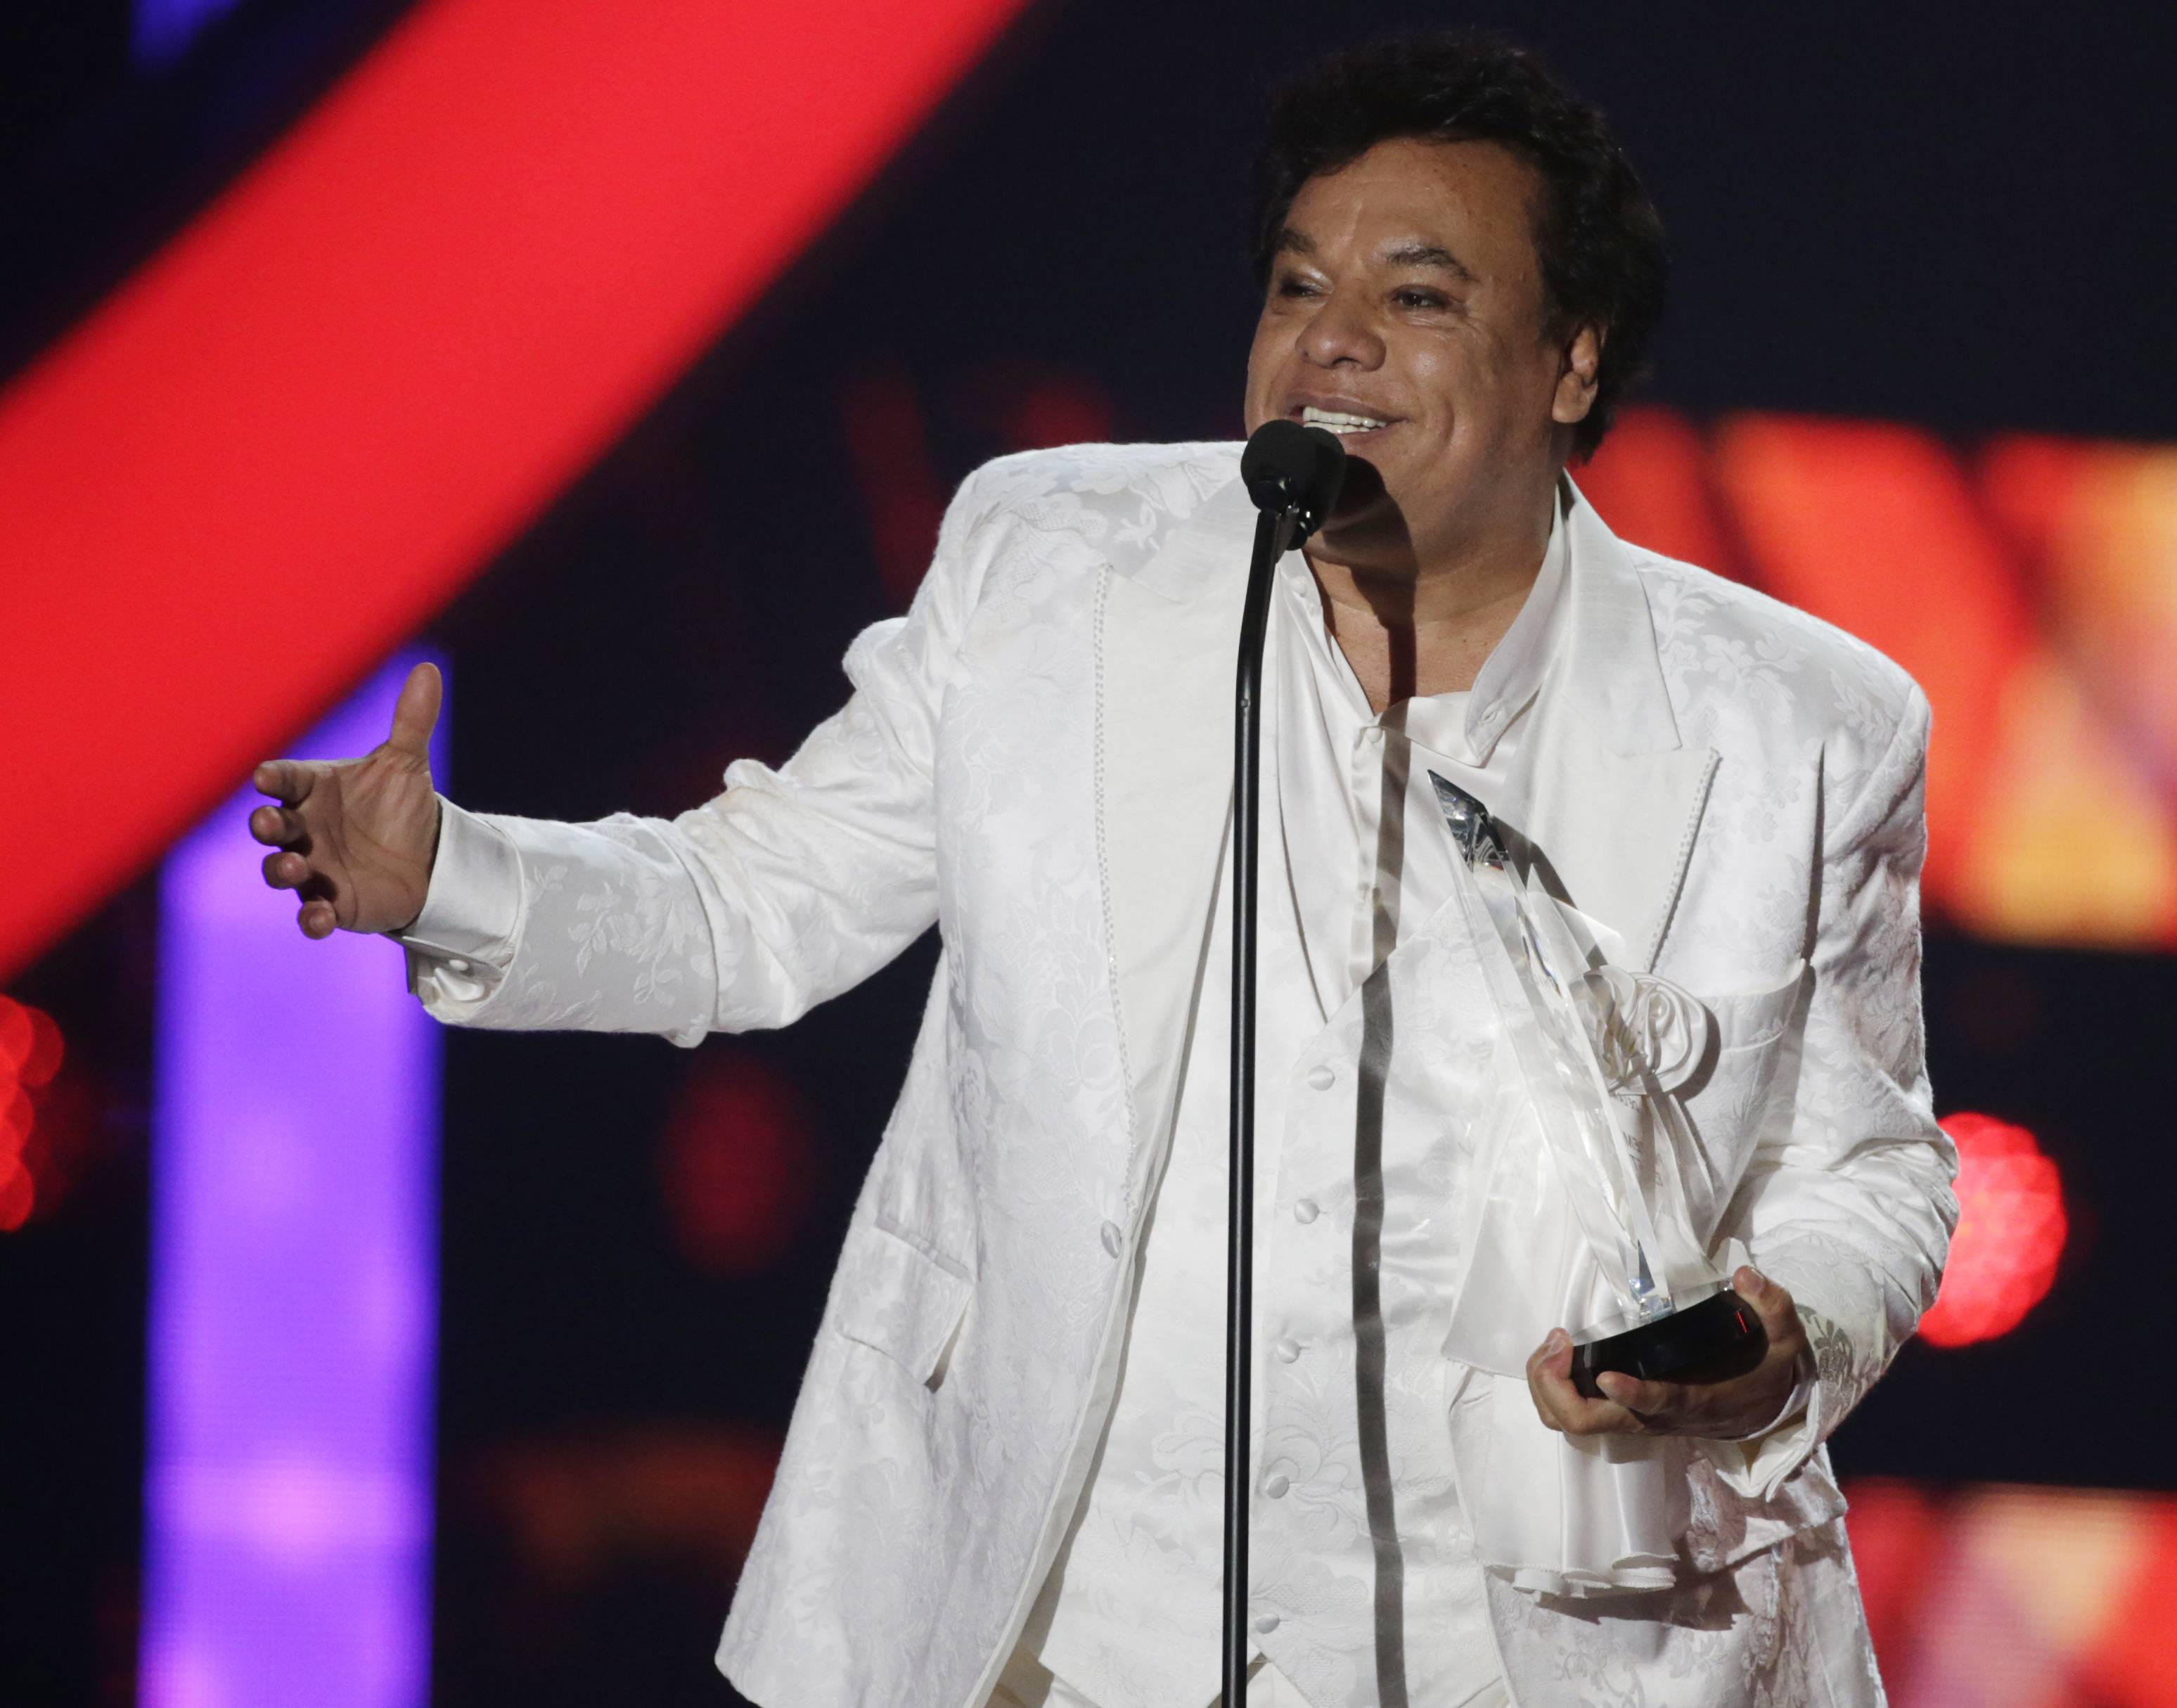 Fans with tickets to see singer Juan Gabriel perform next month at the Allstate Arena in Rosemont will begin receiving refunds Tuesday, an arena official said. Gabriel died unexpectedly Sunday at his home in California.